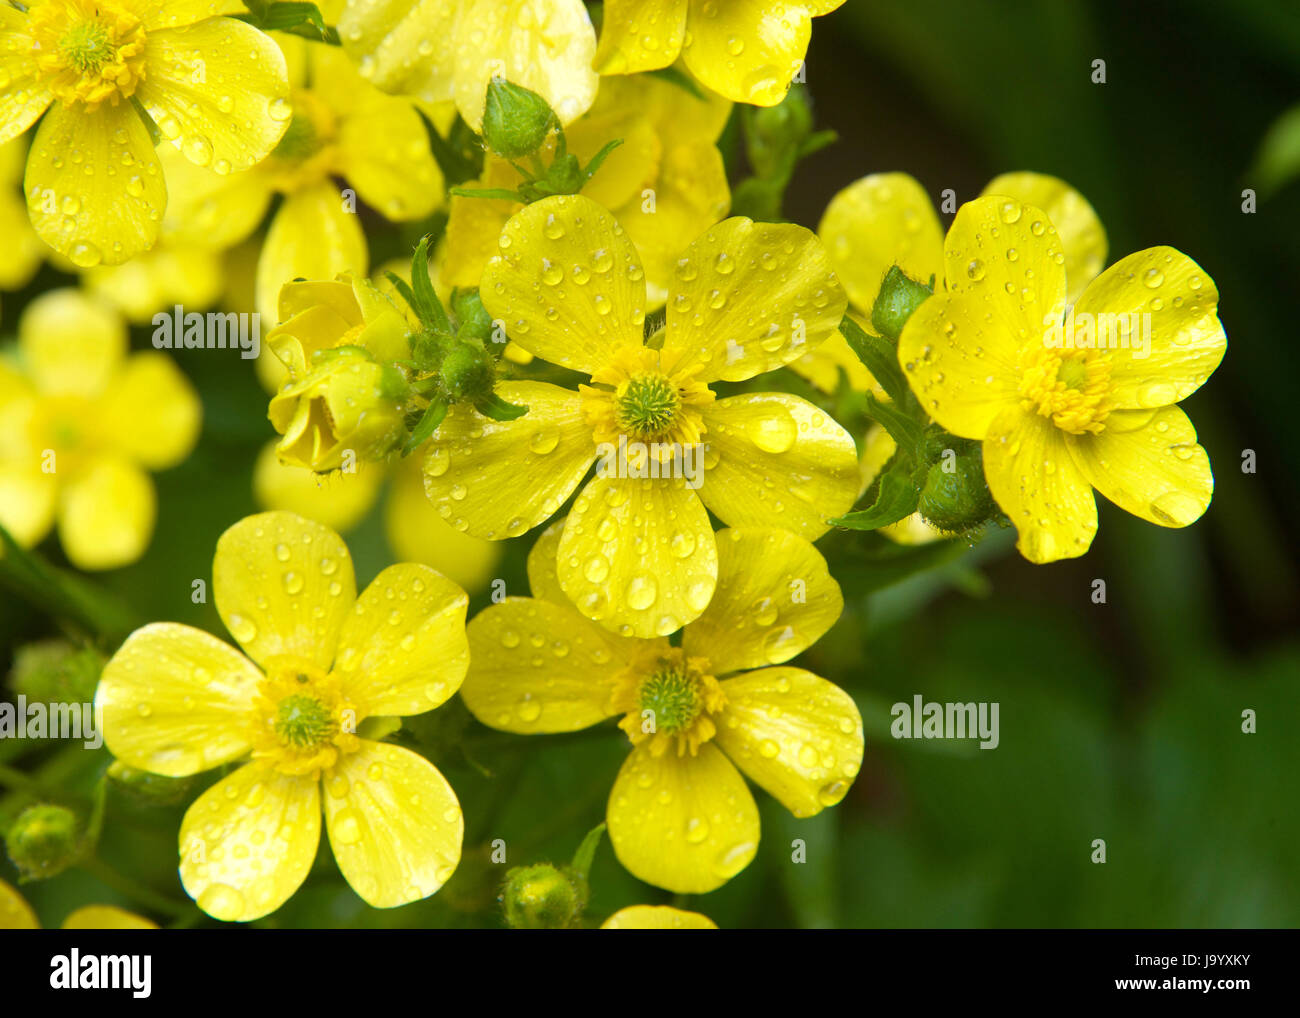 Yellow spring flower five petals stock photos yellow spring flower yellow flower with five petals hkjgm8 rf ranunculus cortusifolius also known as the azores buttercup or canary buttercup is a plant mightylinksfo